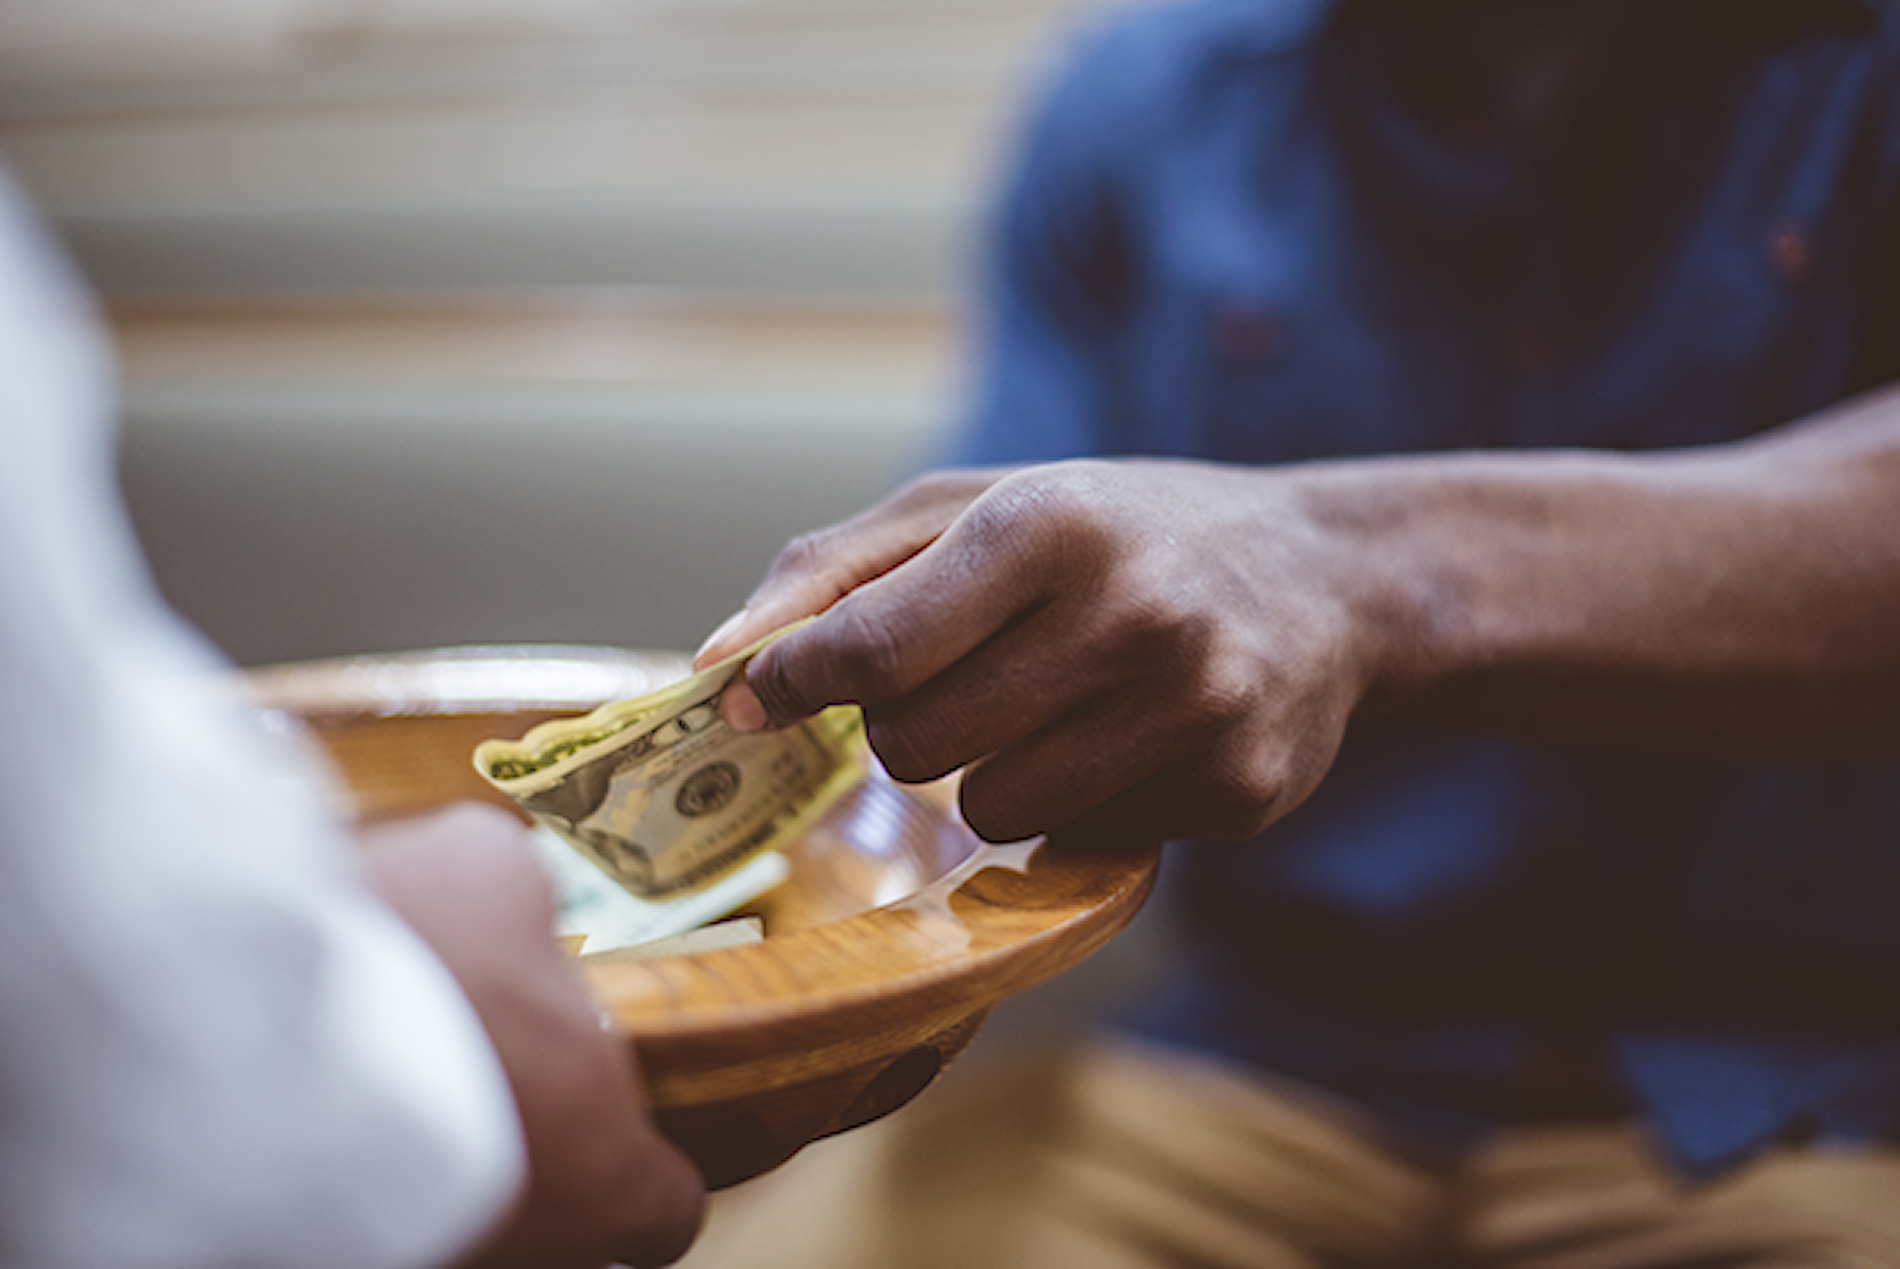 Man placing cash in a wooden donation plate